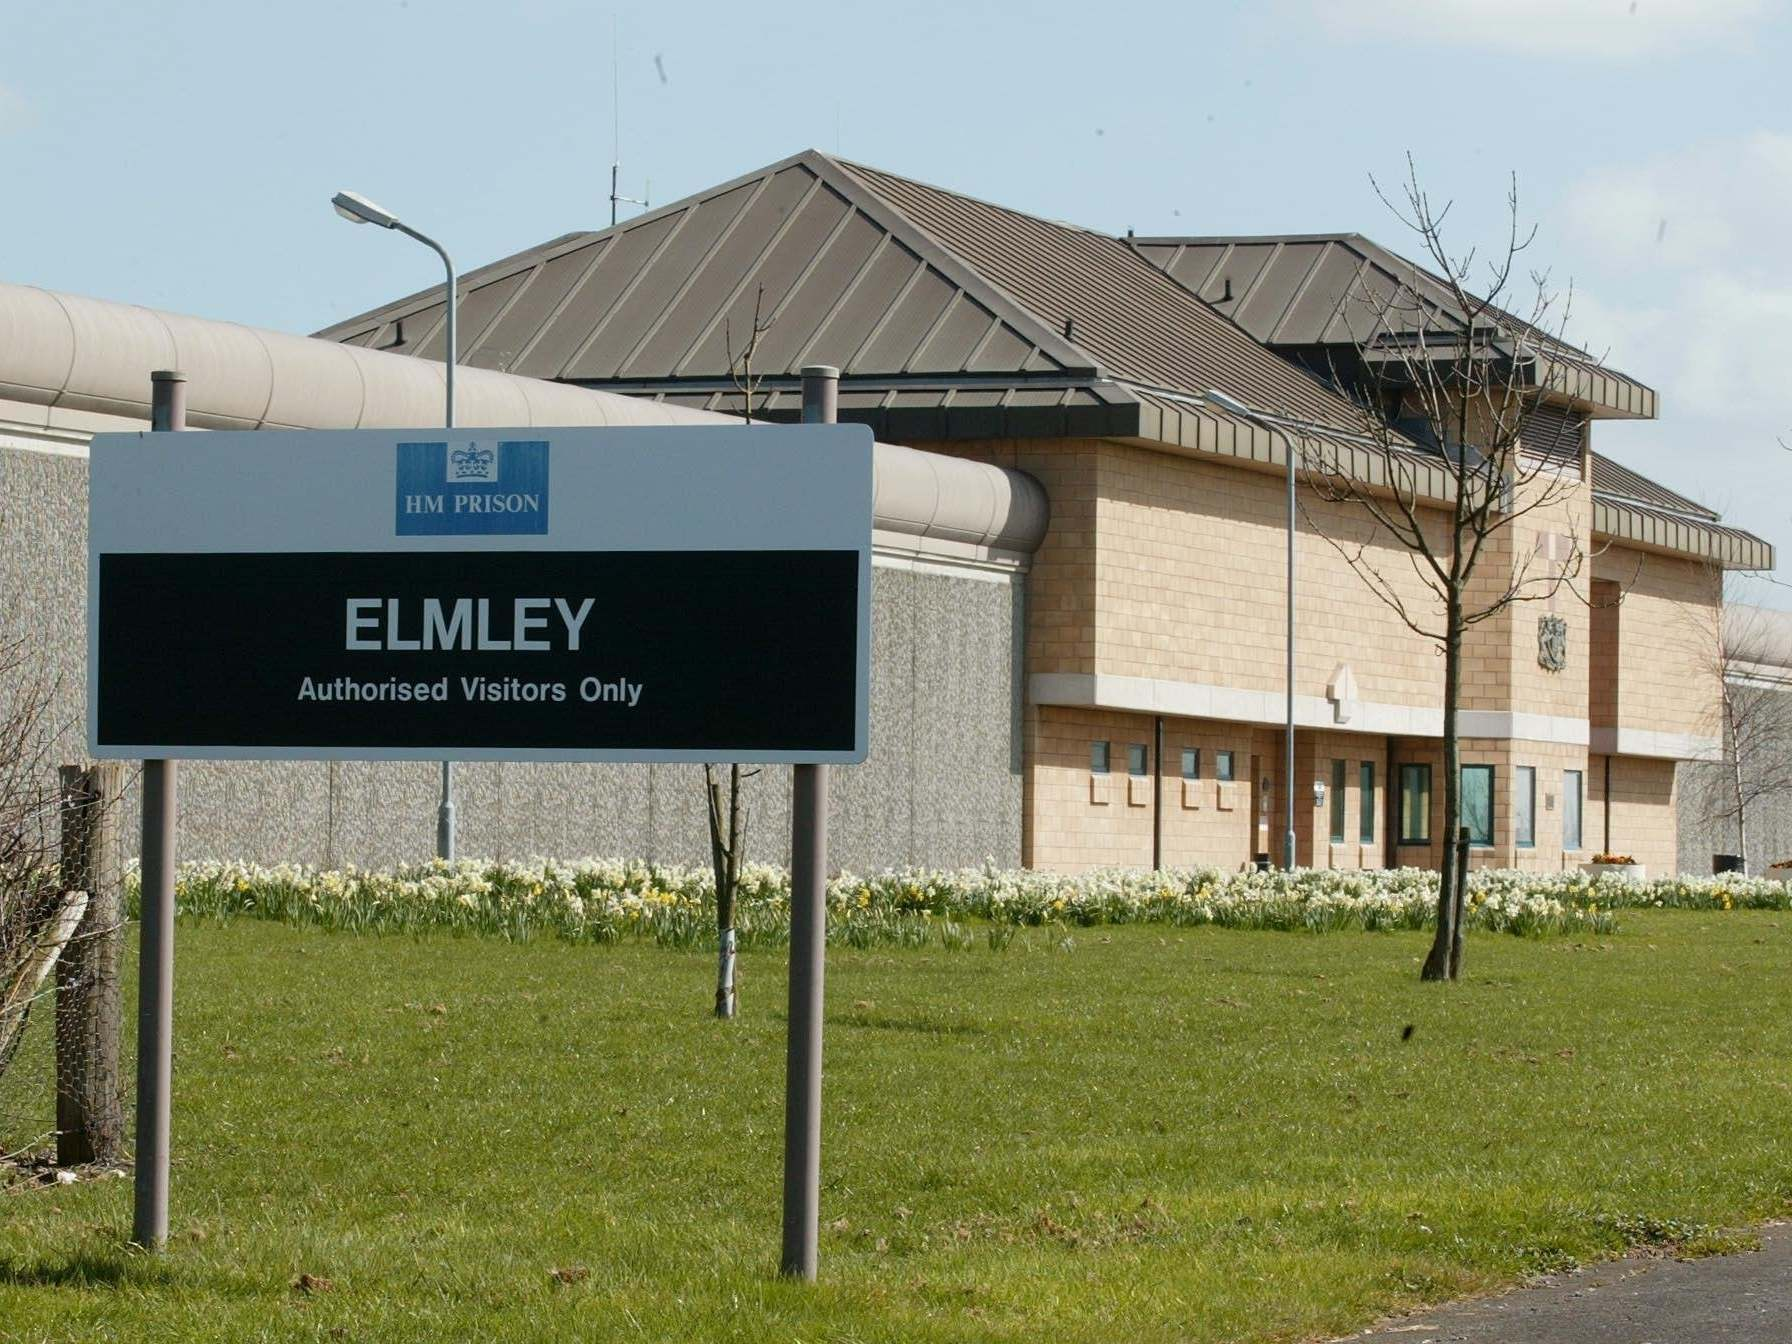 Almost a quarter of HMP Elmley's inmates test positive for illegal drugs